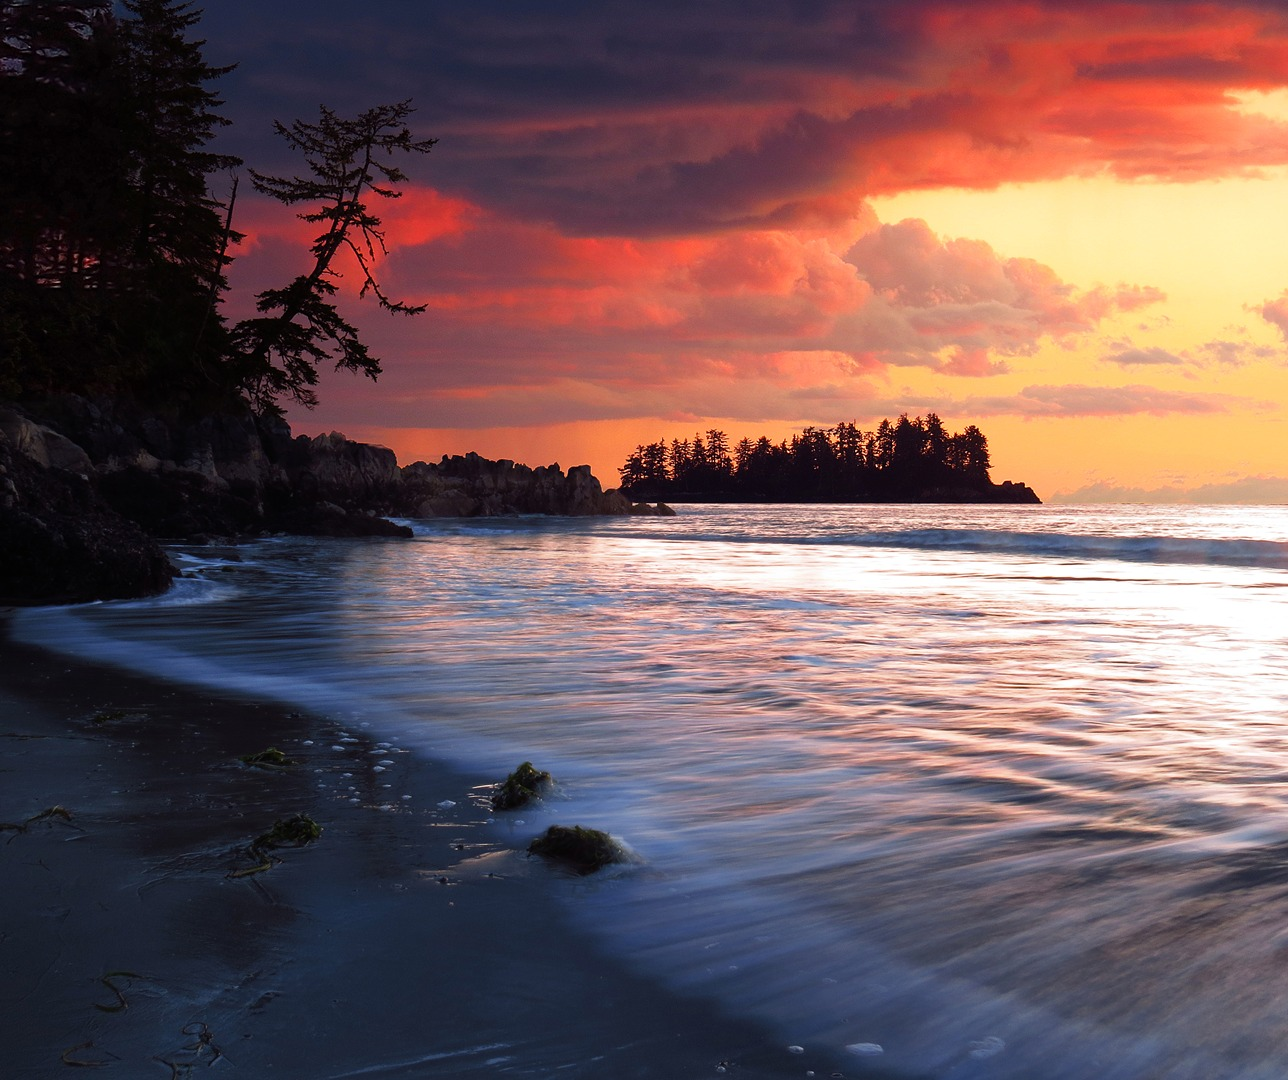 Vancouver Bc Beaches: Vancouver Island, BC: August 24